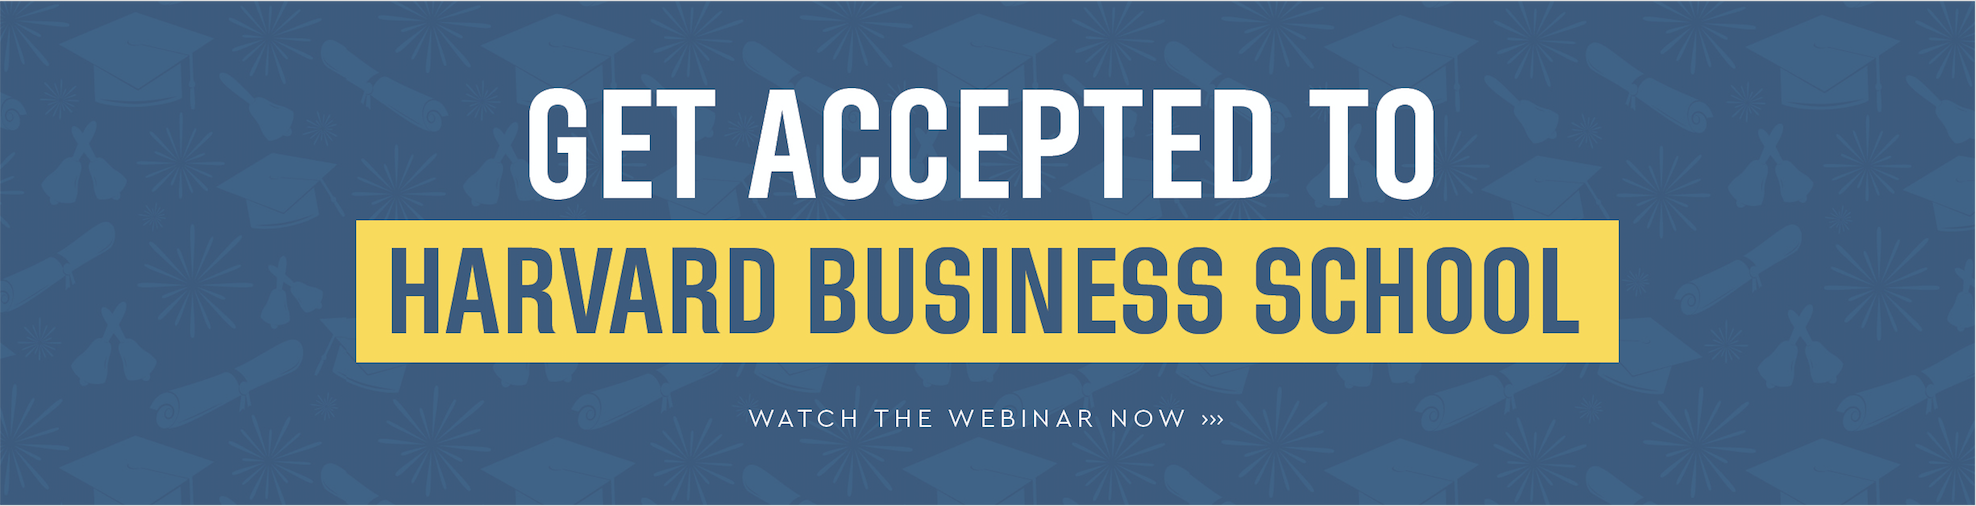 Free webinar: Get Accepted to Harvard Business School! << Click here to watch >>